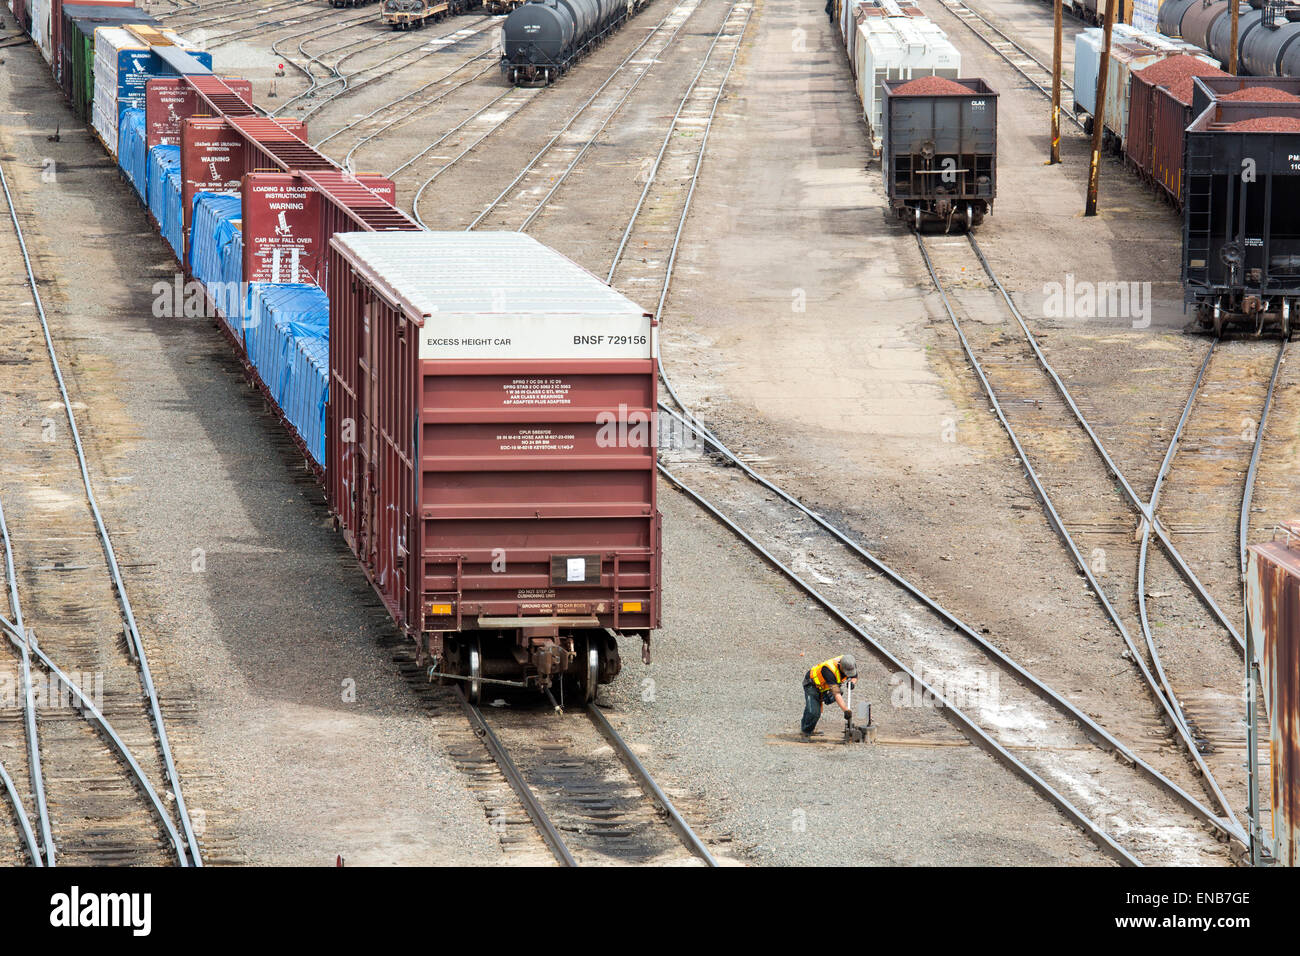 Denver, Colorado - A worker throws a switch in the Union Pacific Denver North Rail Yard. - Stock Image